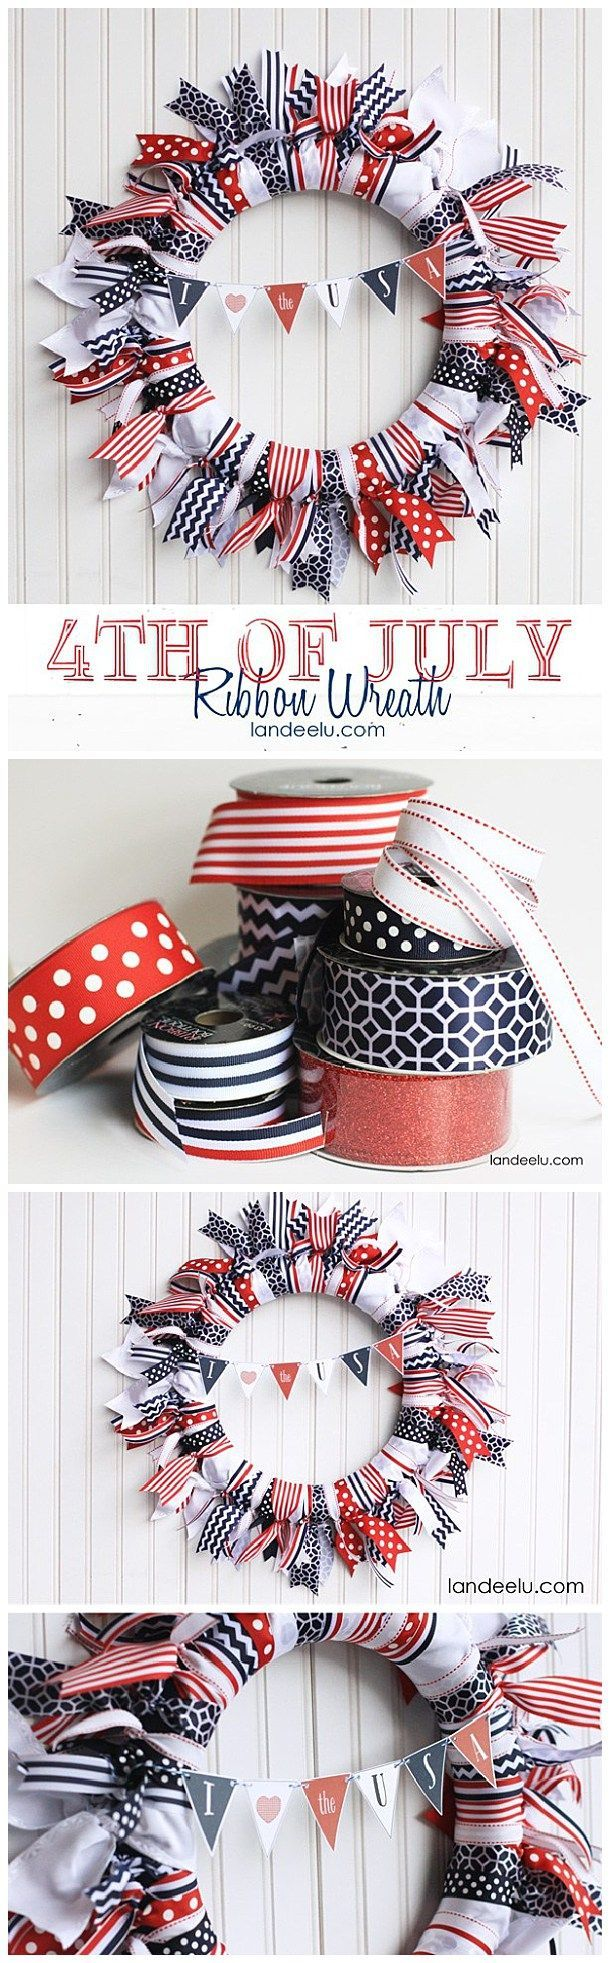 Easy DIY Red, White and Blue 4th of July Ribbon Wreath with cute and free printable patriotic mini bunting!